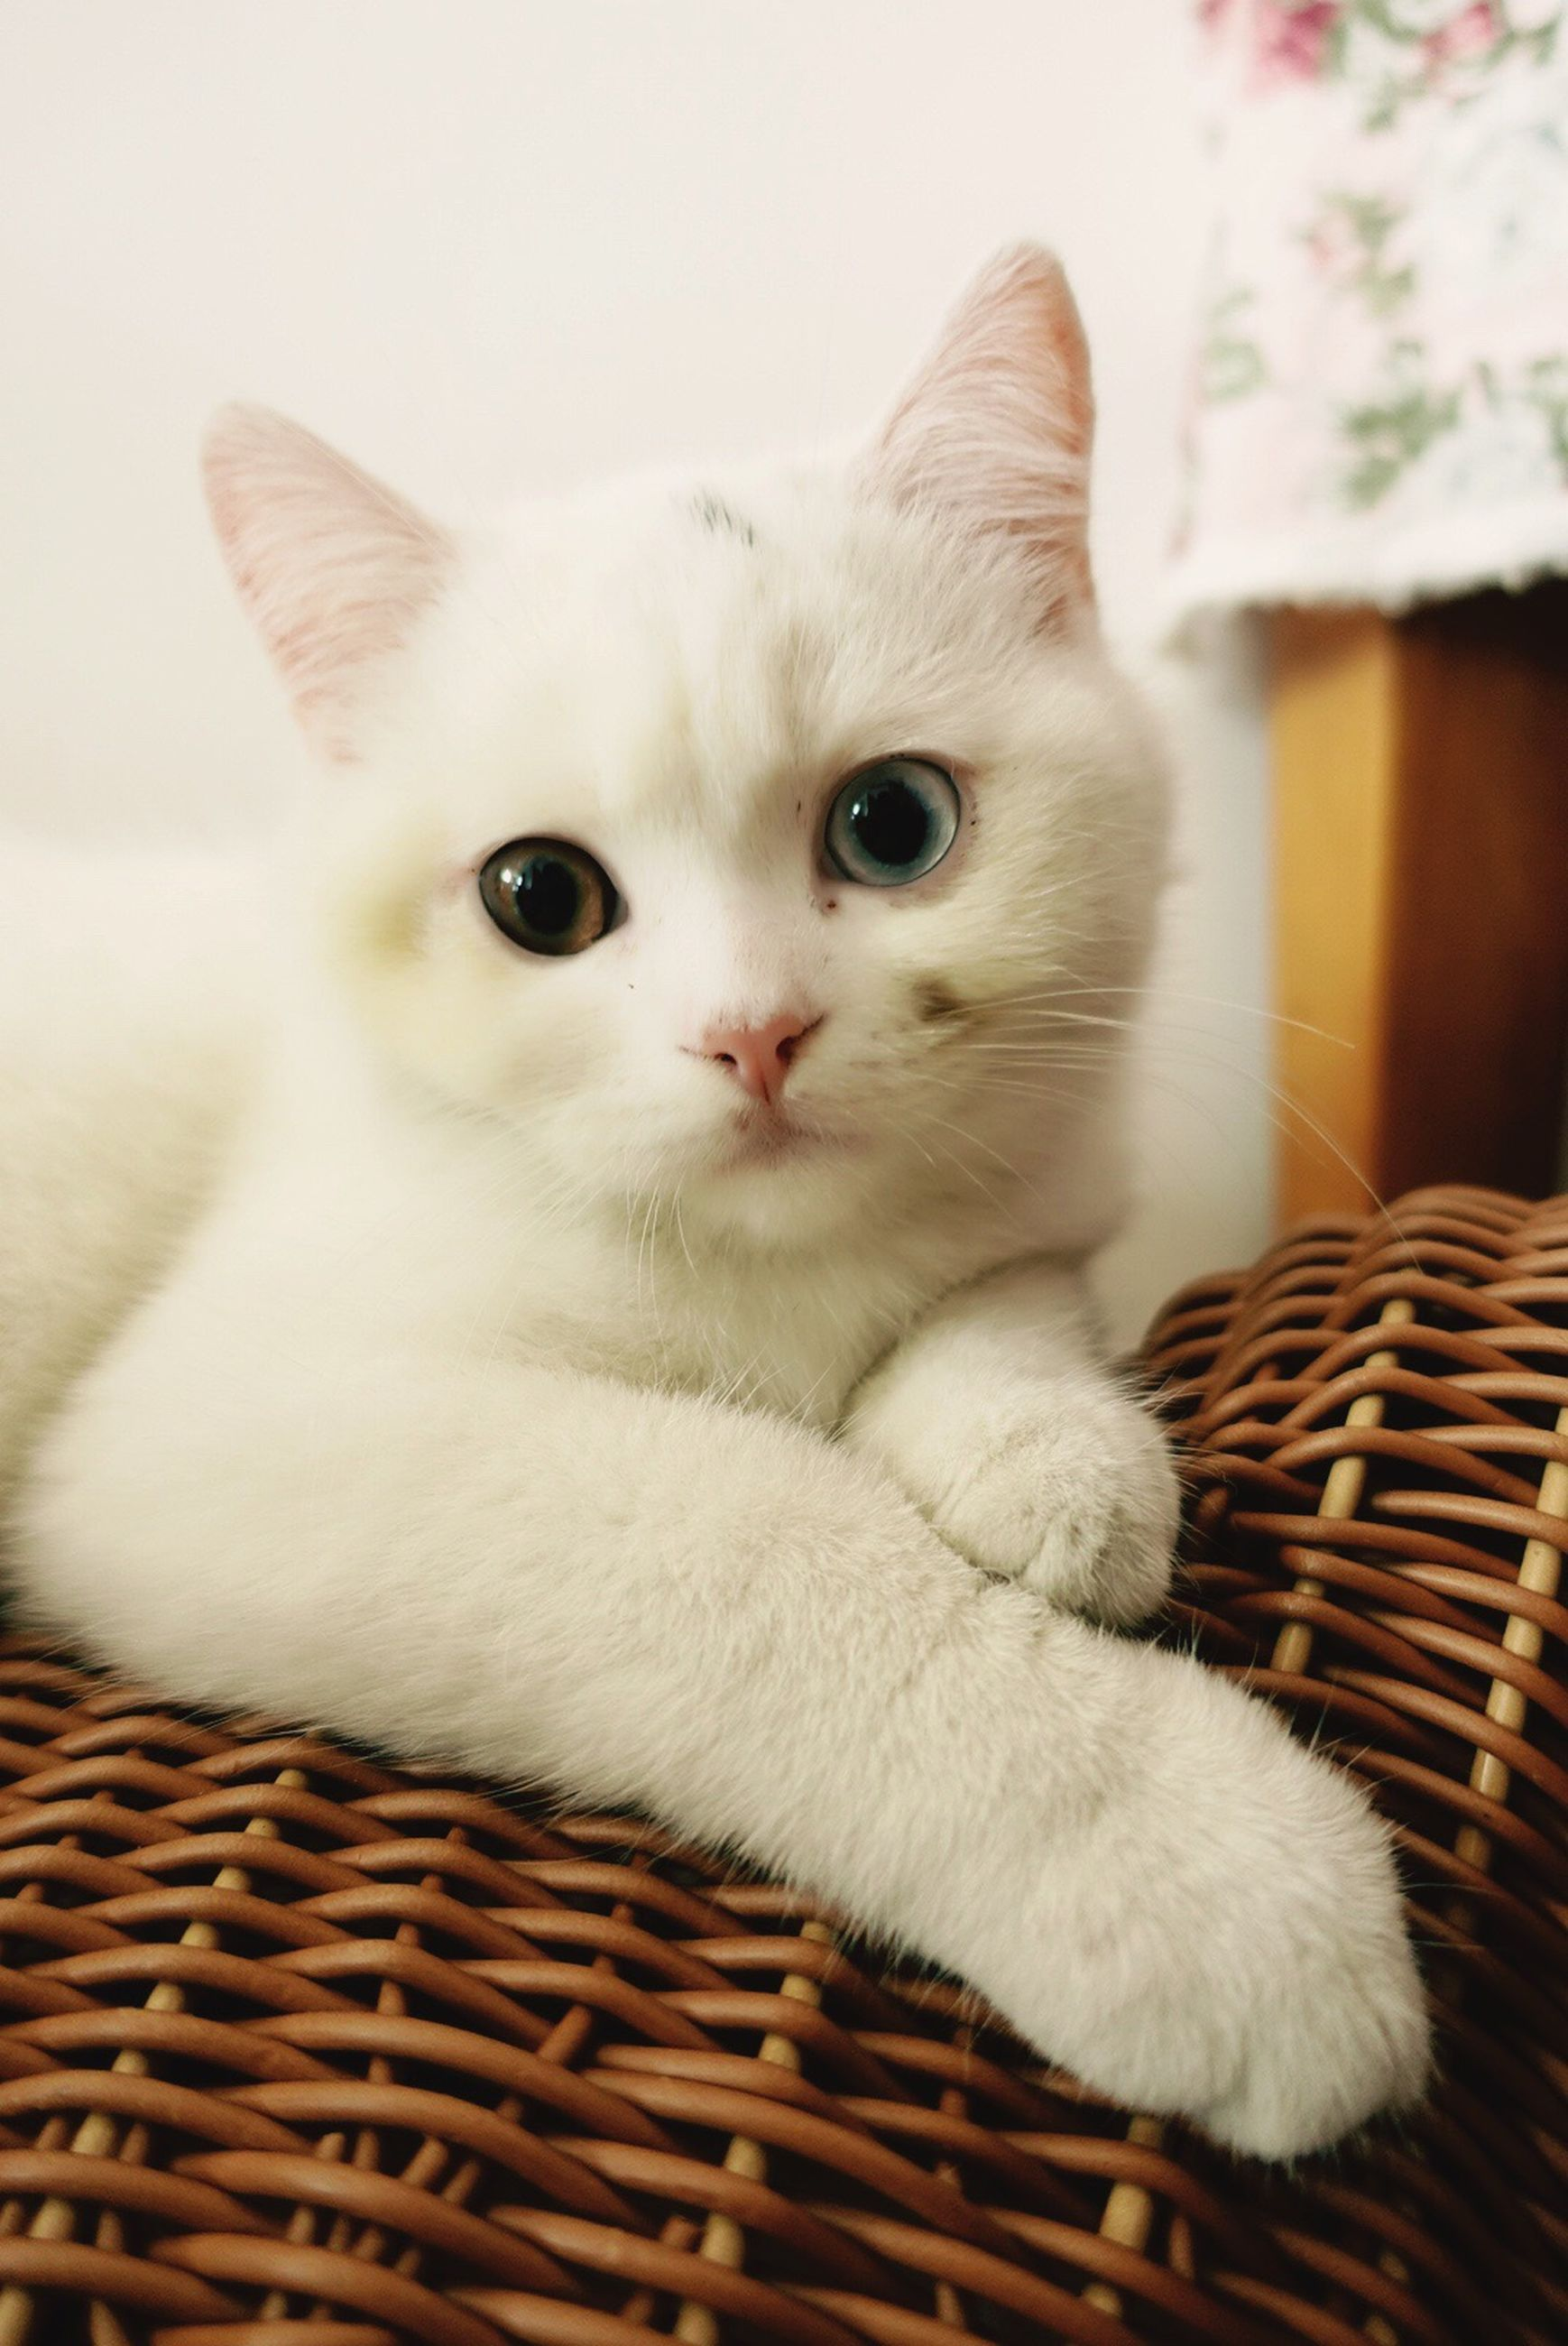 domestic cat, pets, domestic animals, looking at camera, portrait, one animal, mammal, feline, animal themes, indoors, home interior, whisker, no people, close-up, day